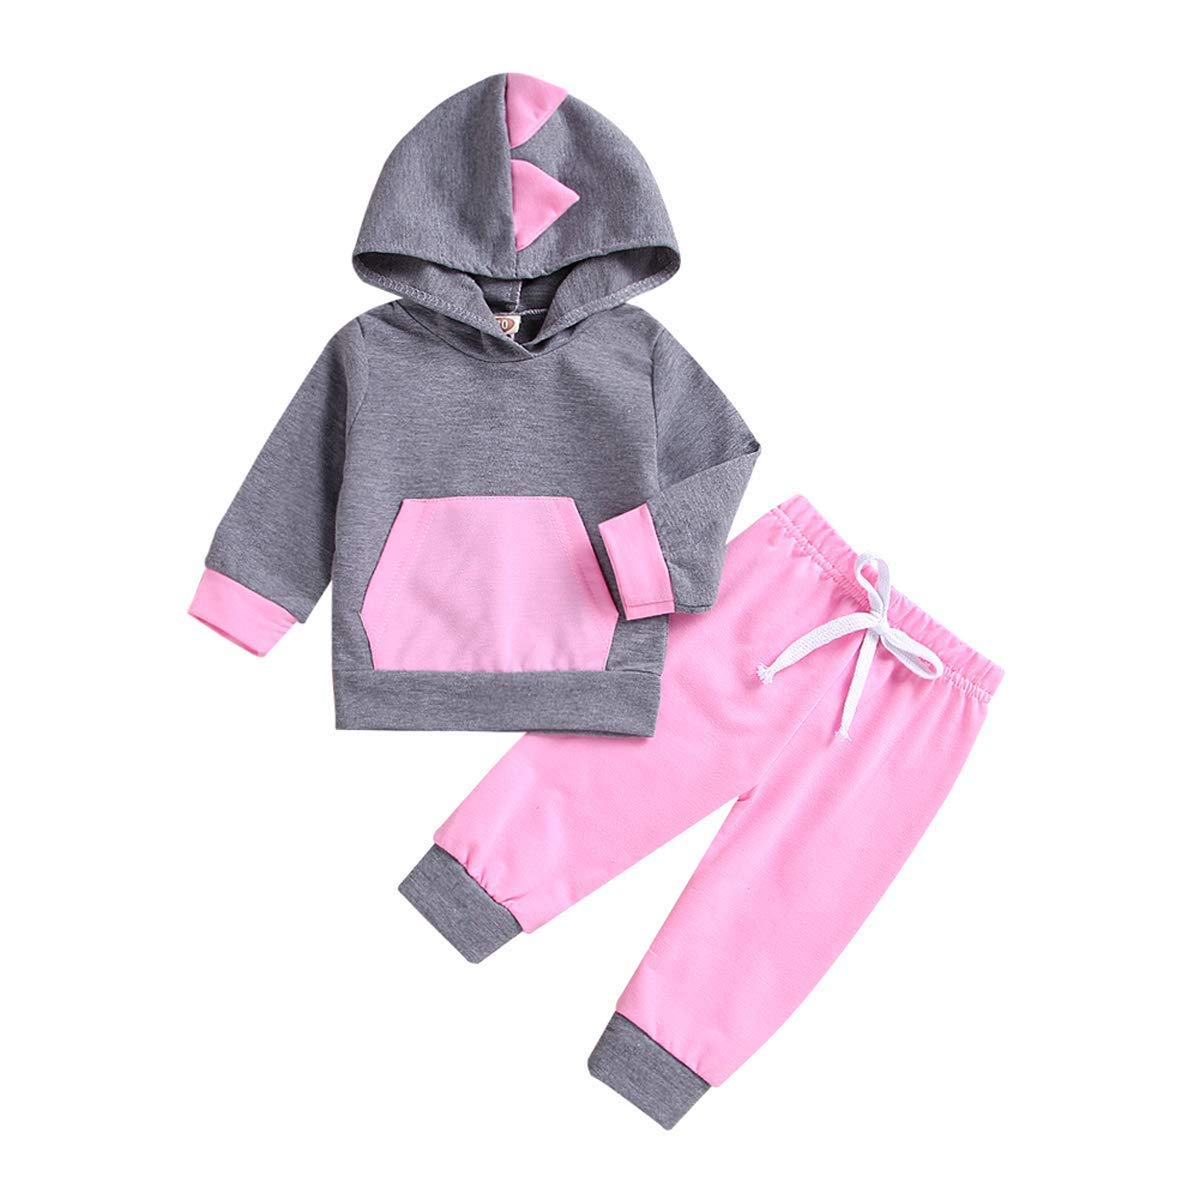 Zukuco Toddler Baby Girl Boy Hoodie Outfit Pocket Hooded Top + Cartoon Print Pants Clothes Set